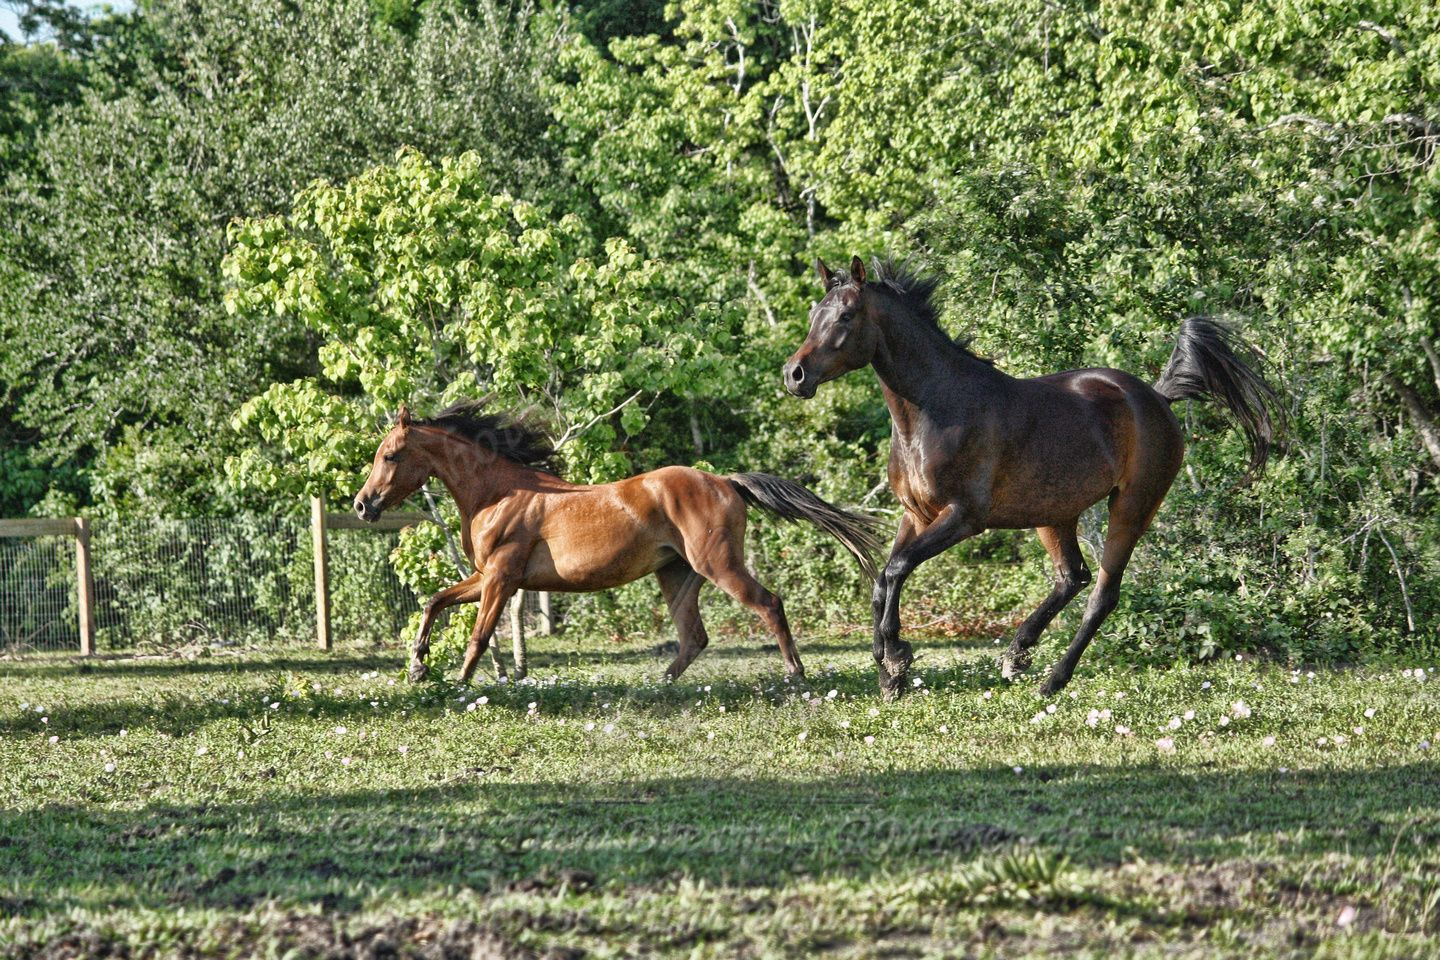 Julie's Arabians - At Julie's - Alvin, TX - May 12, 2013 - Prints now available!